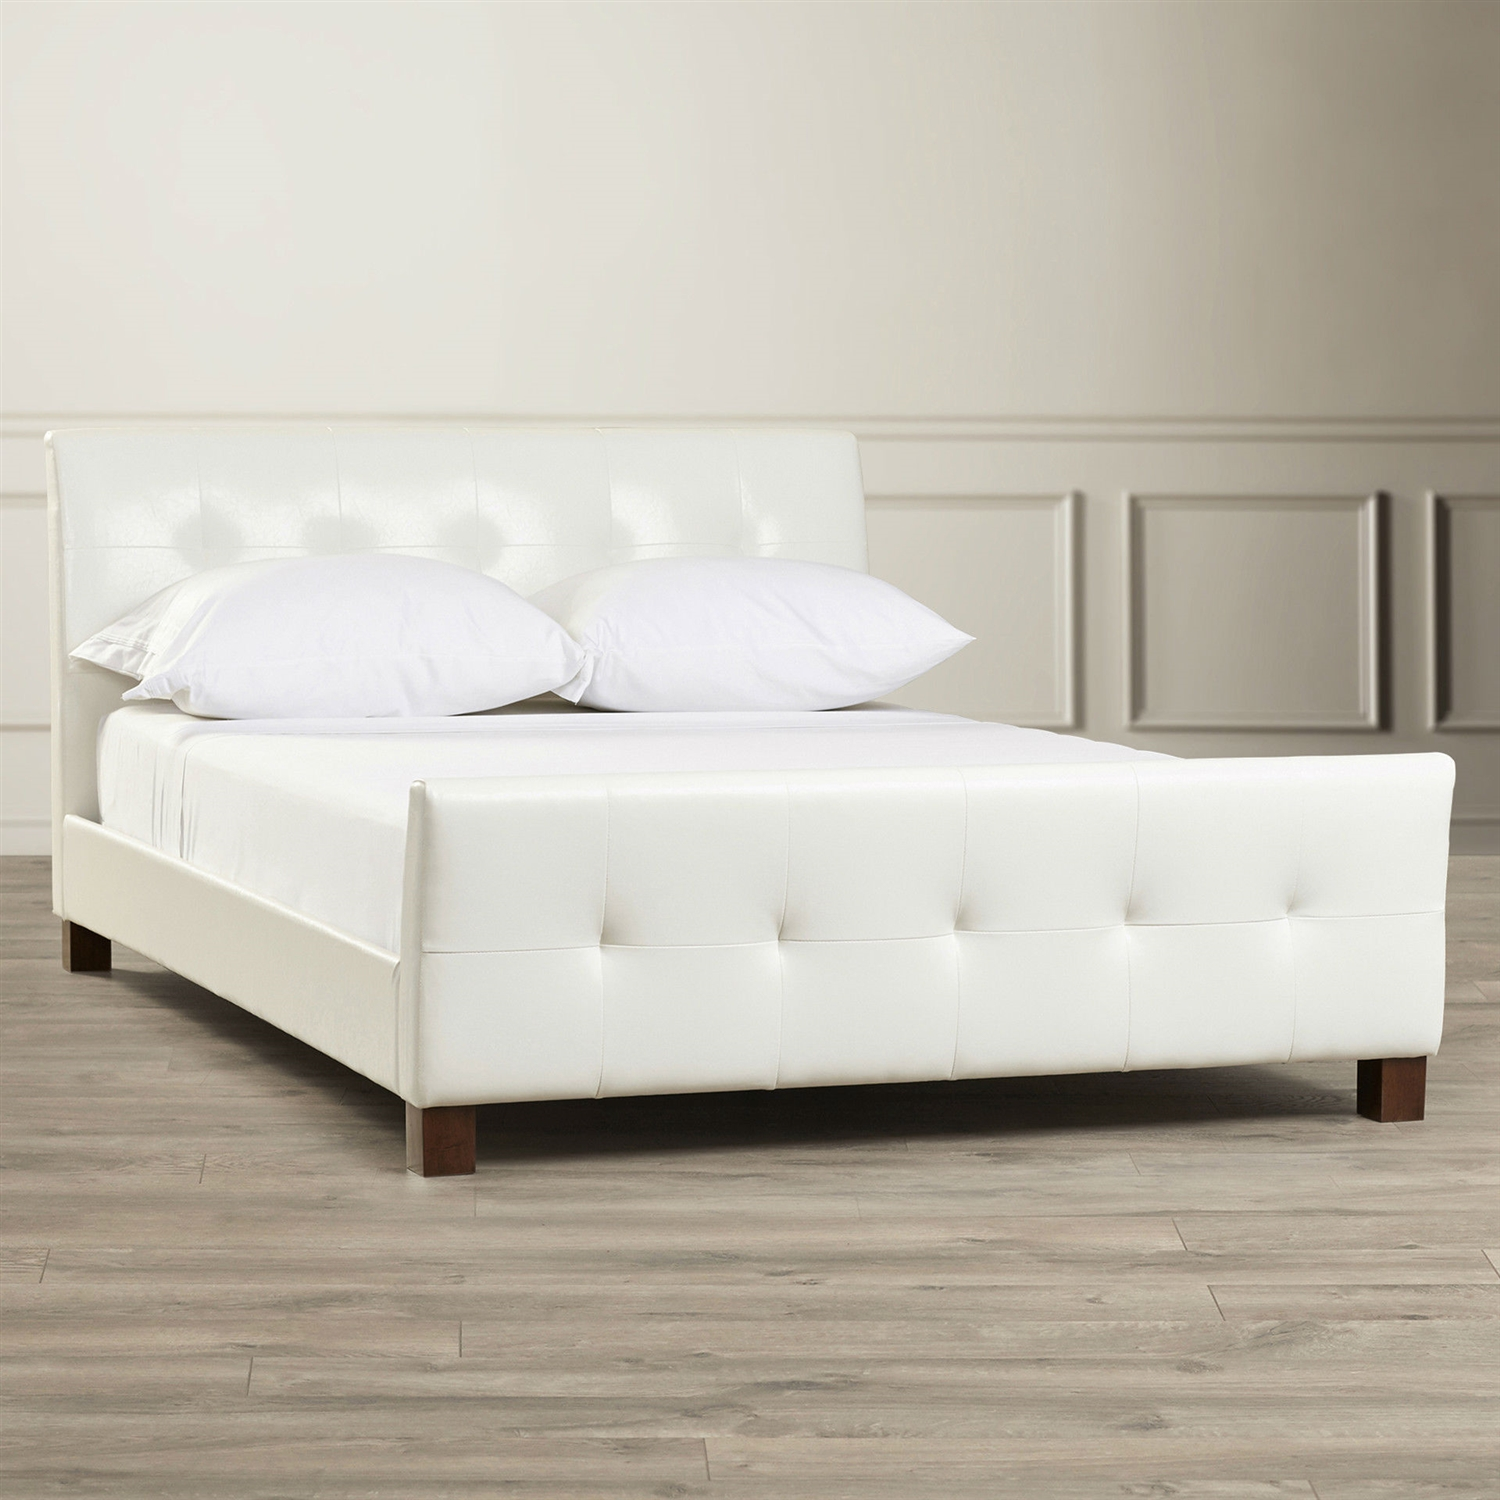 100 white modern platform bed with leather headboard love i